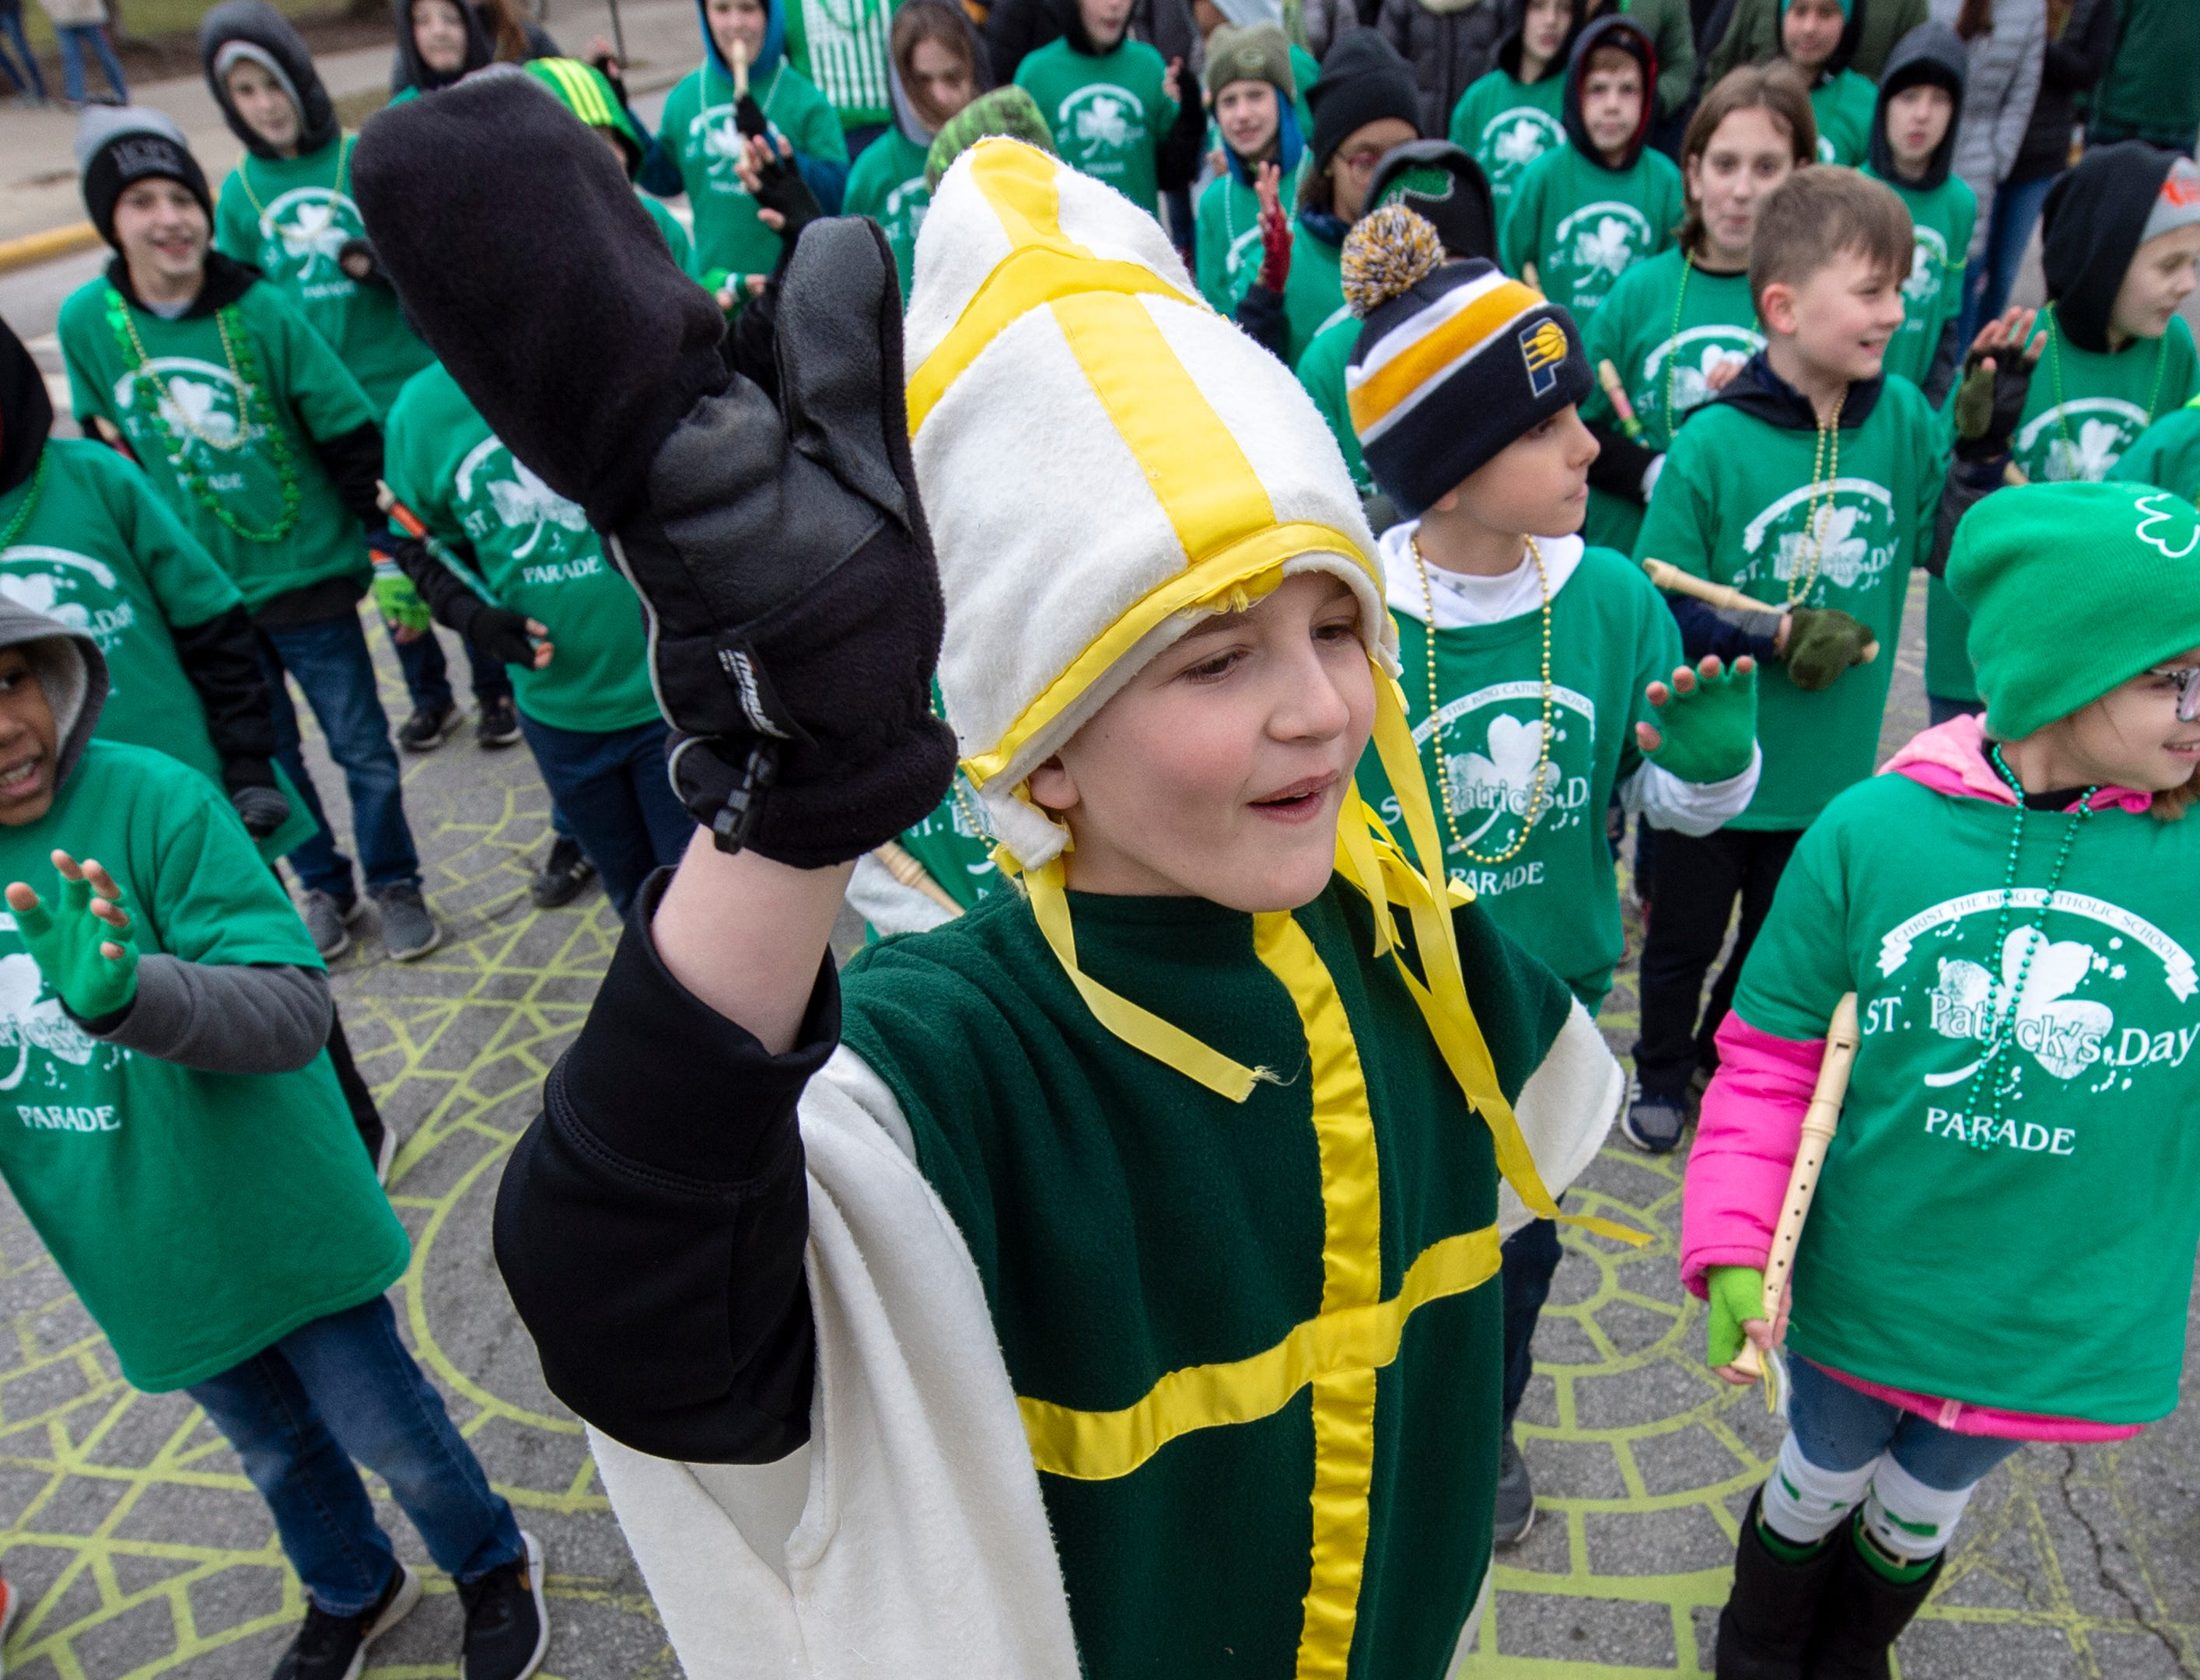 Declain McAllister, 10, portrays St. Patrick during the parade. The 39th annual St. Patrick's Day Parade navigated the streets of Indianapolis, Friday, March 15, 2019.